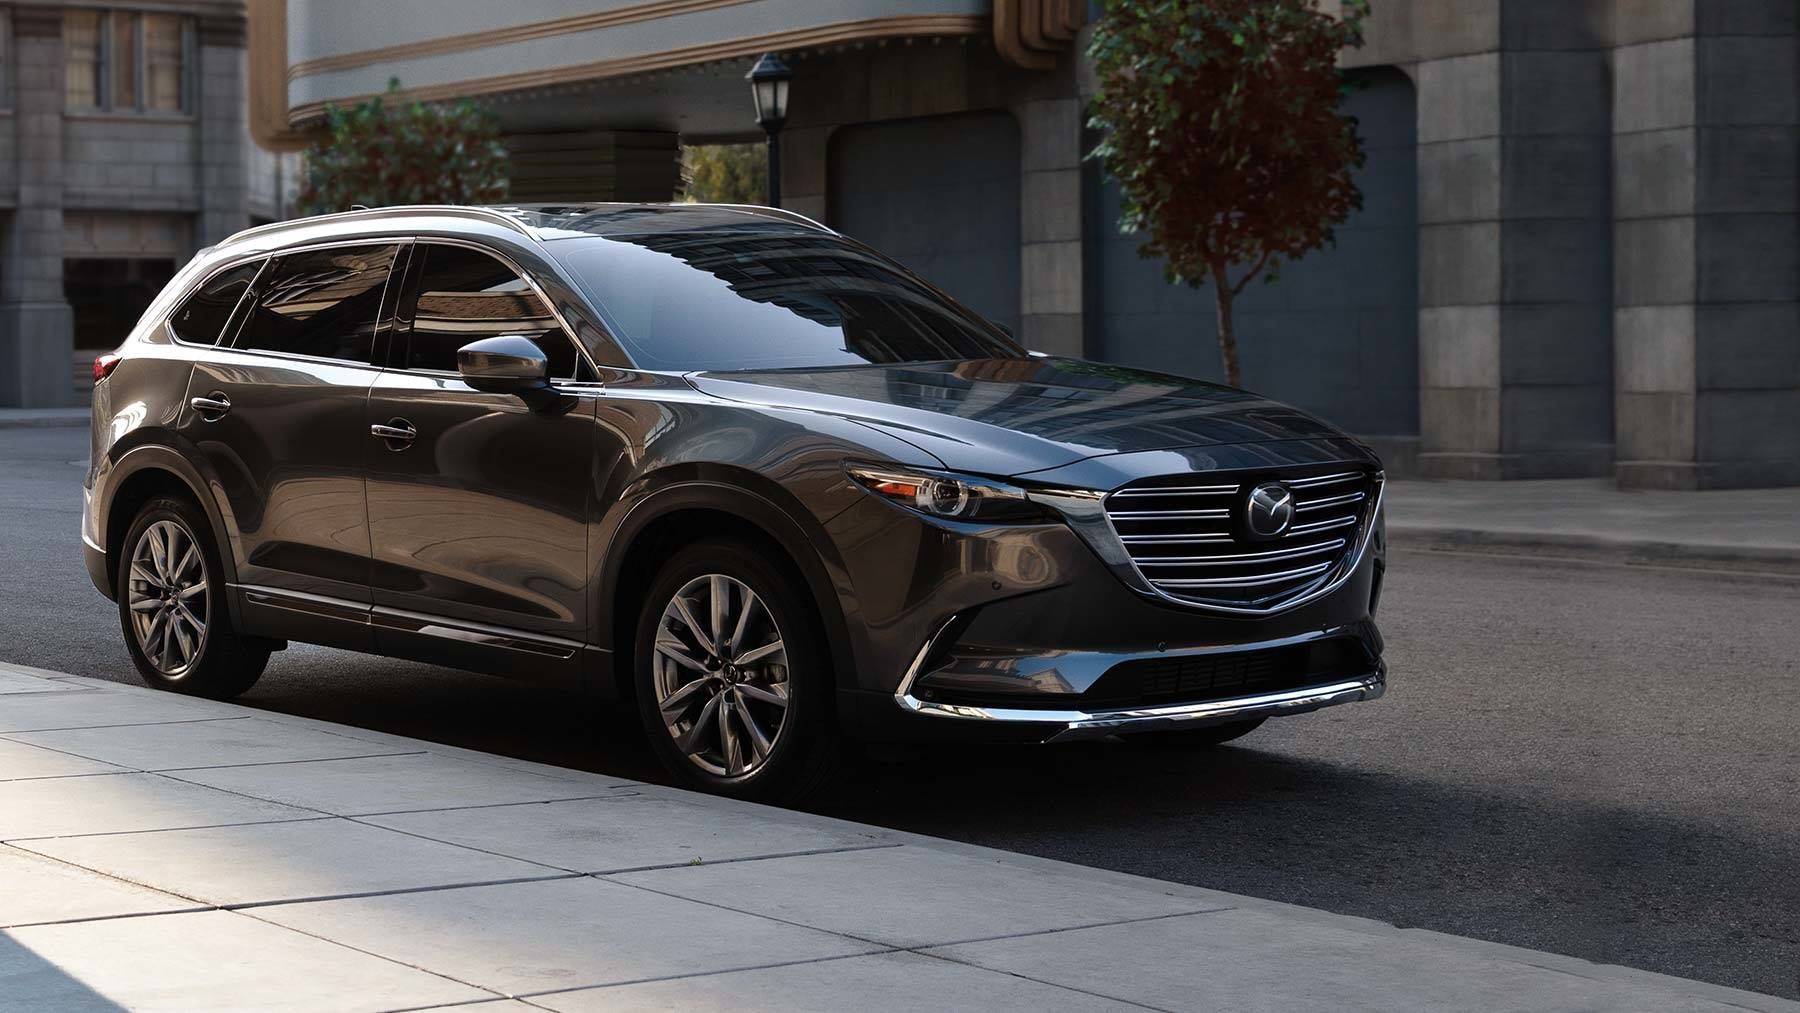 2019 Mazda CX-9 Leasing near Rockville, MD